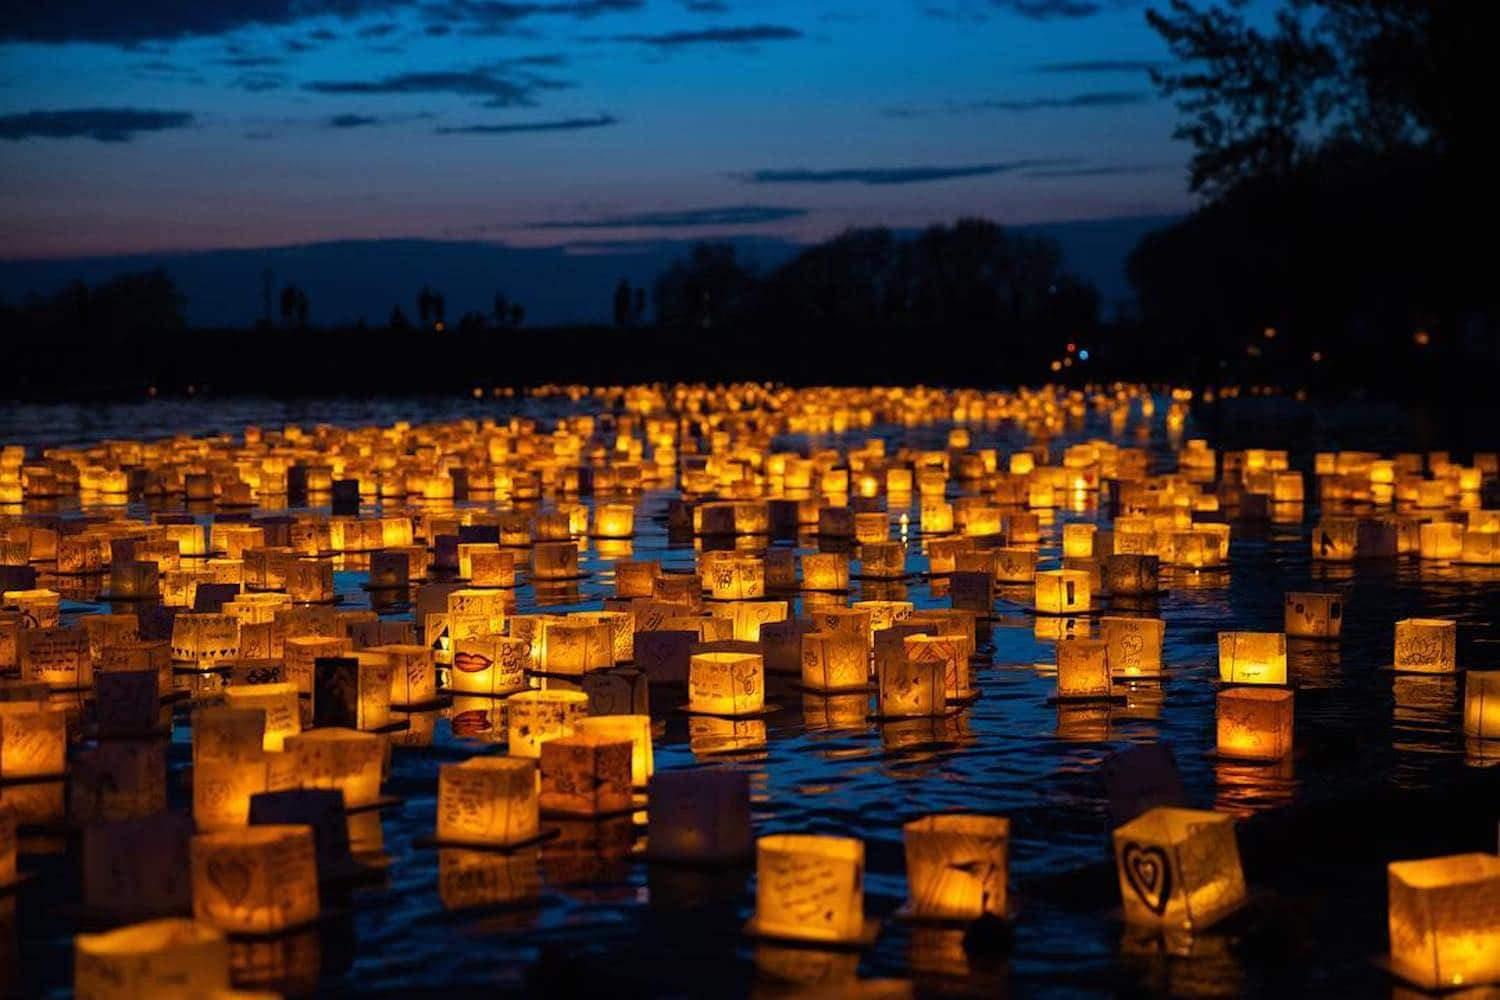 Chinese water lanterns